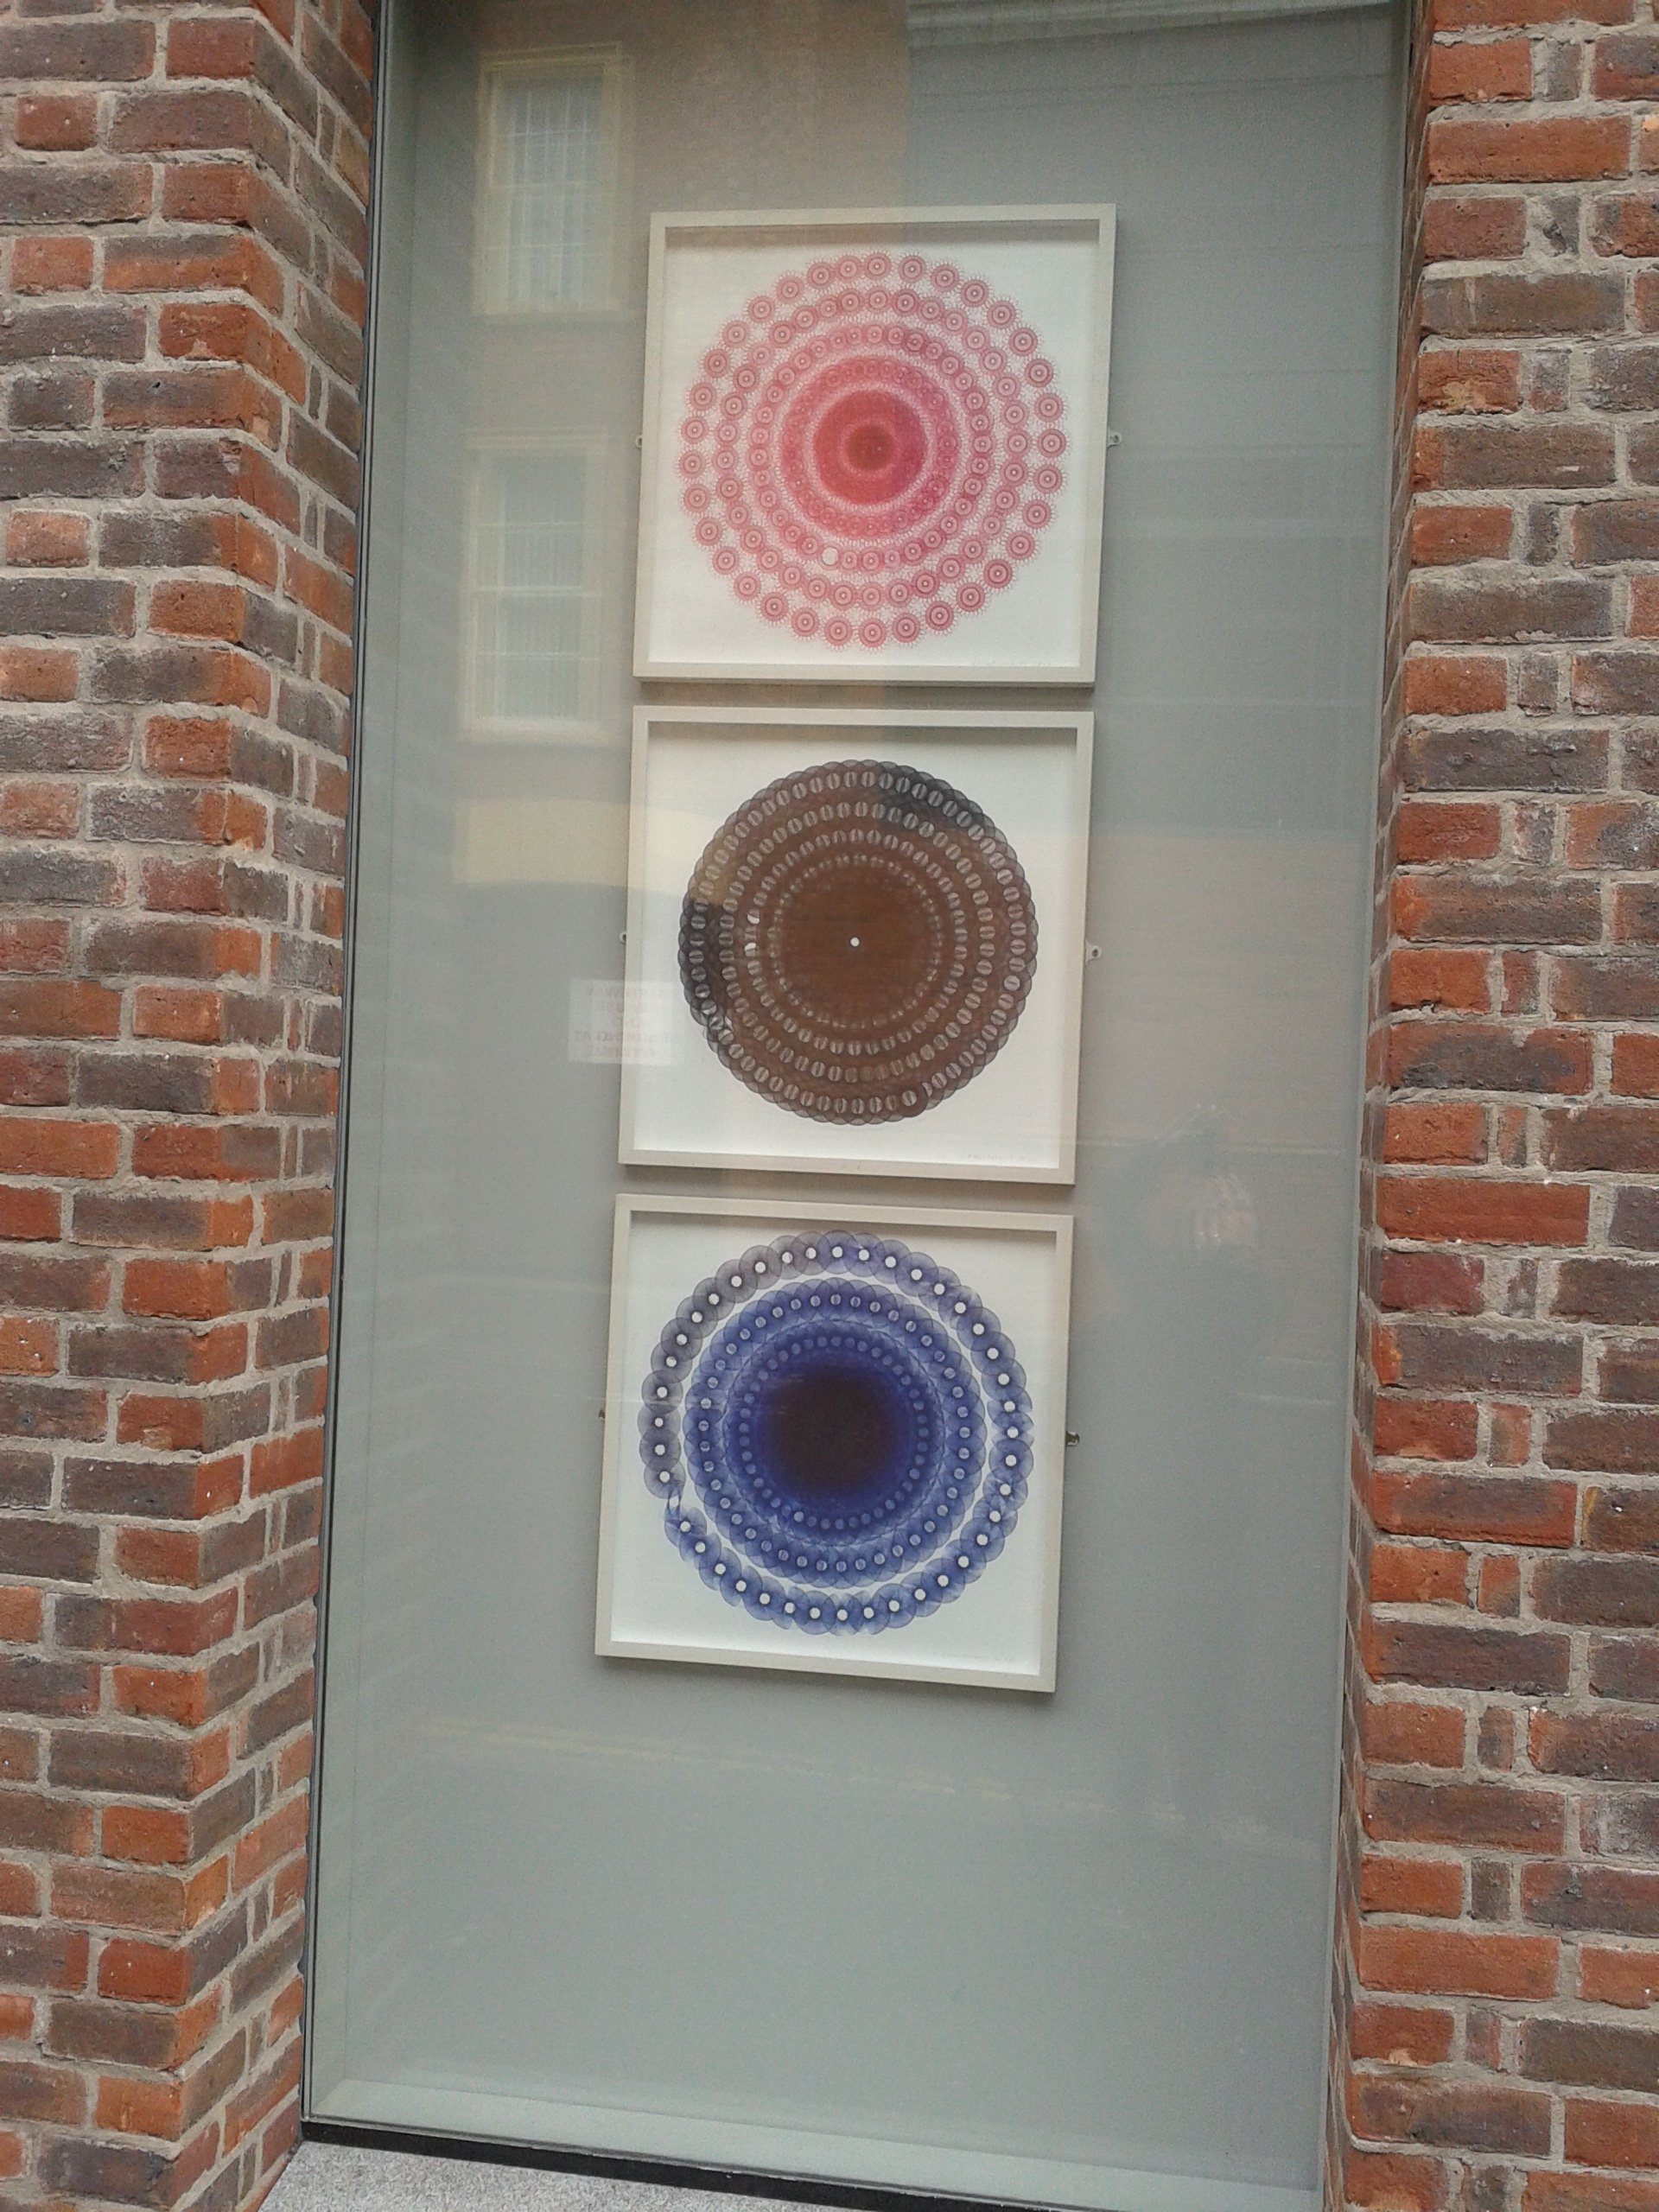 Target (Red, Black and Blue)